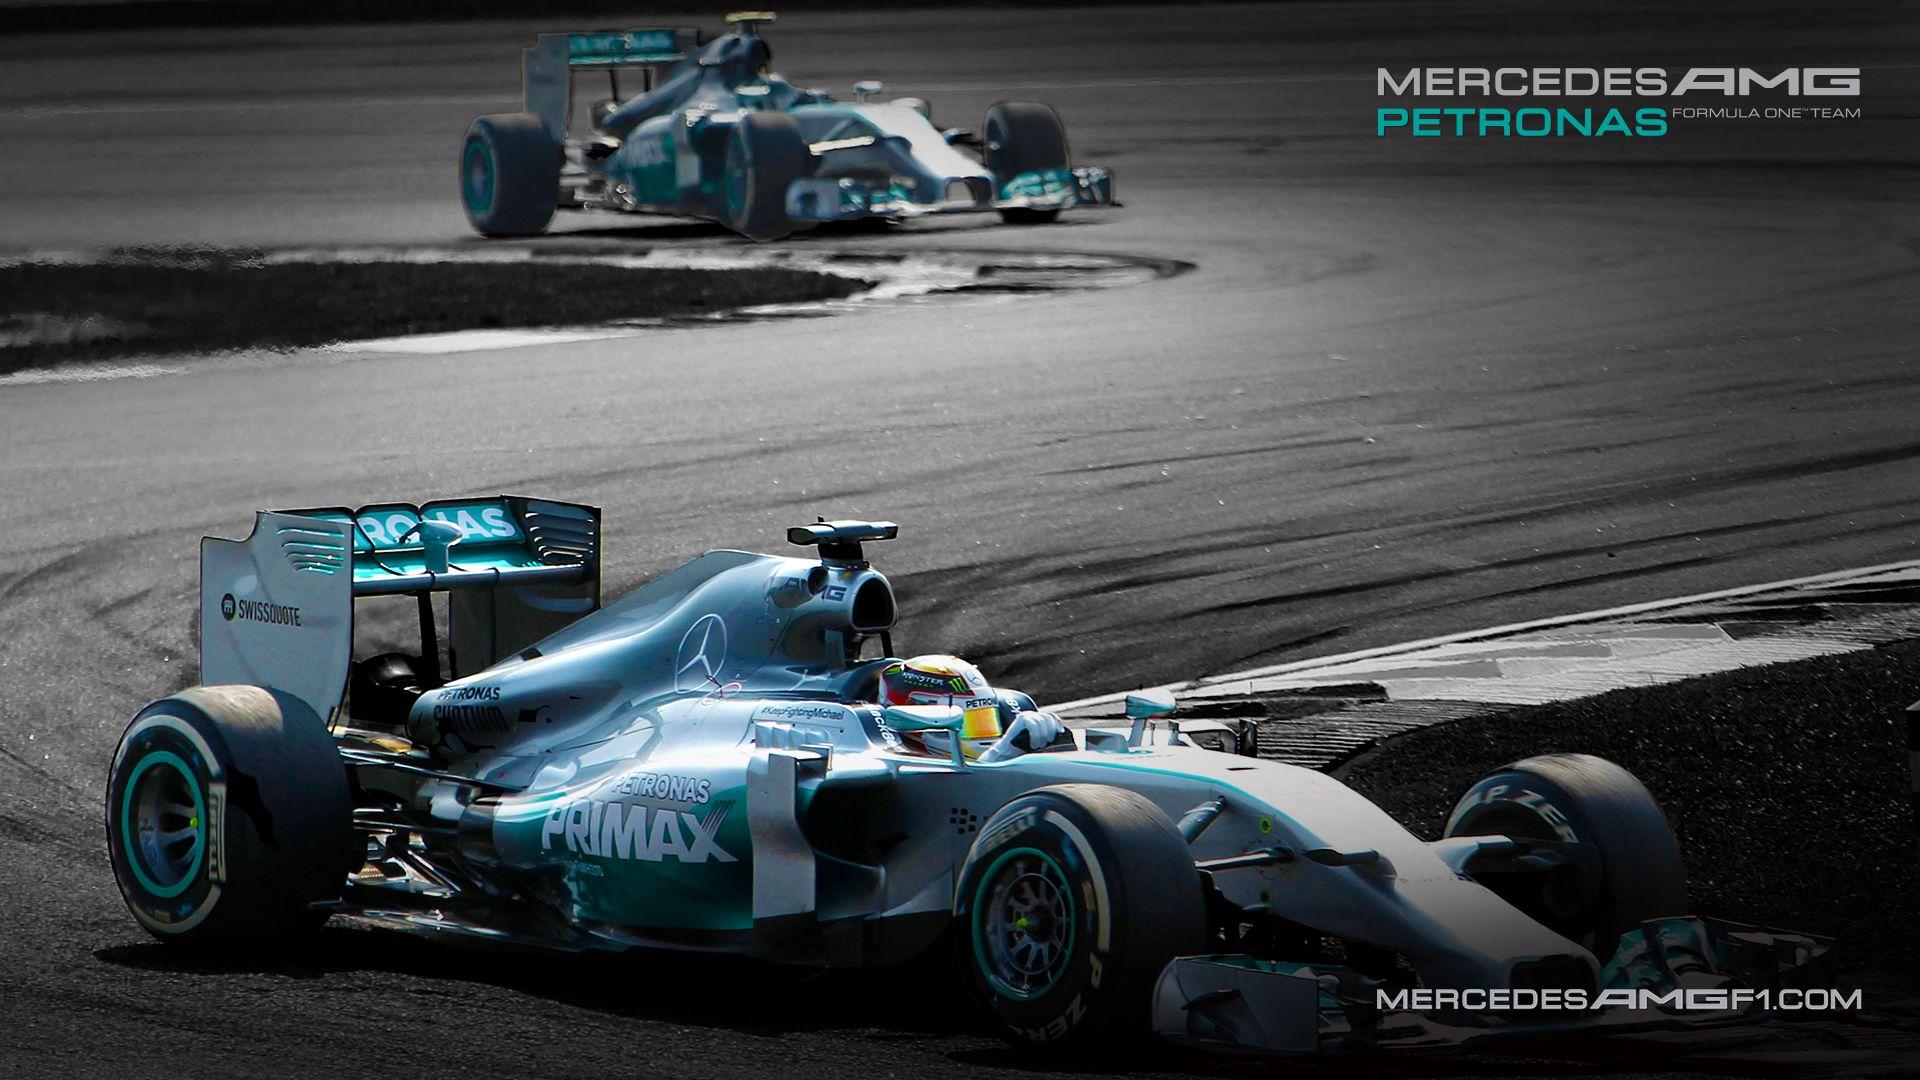 Formula One Mercedes AMG Petronas Moving Desktop Wallpapers